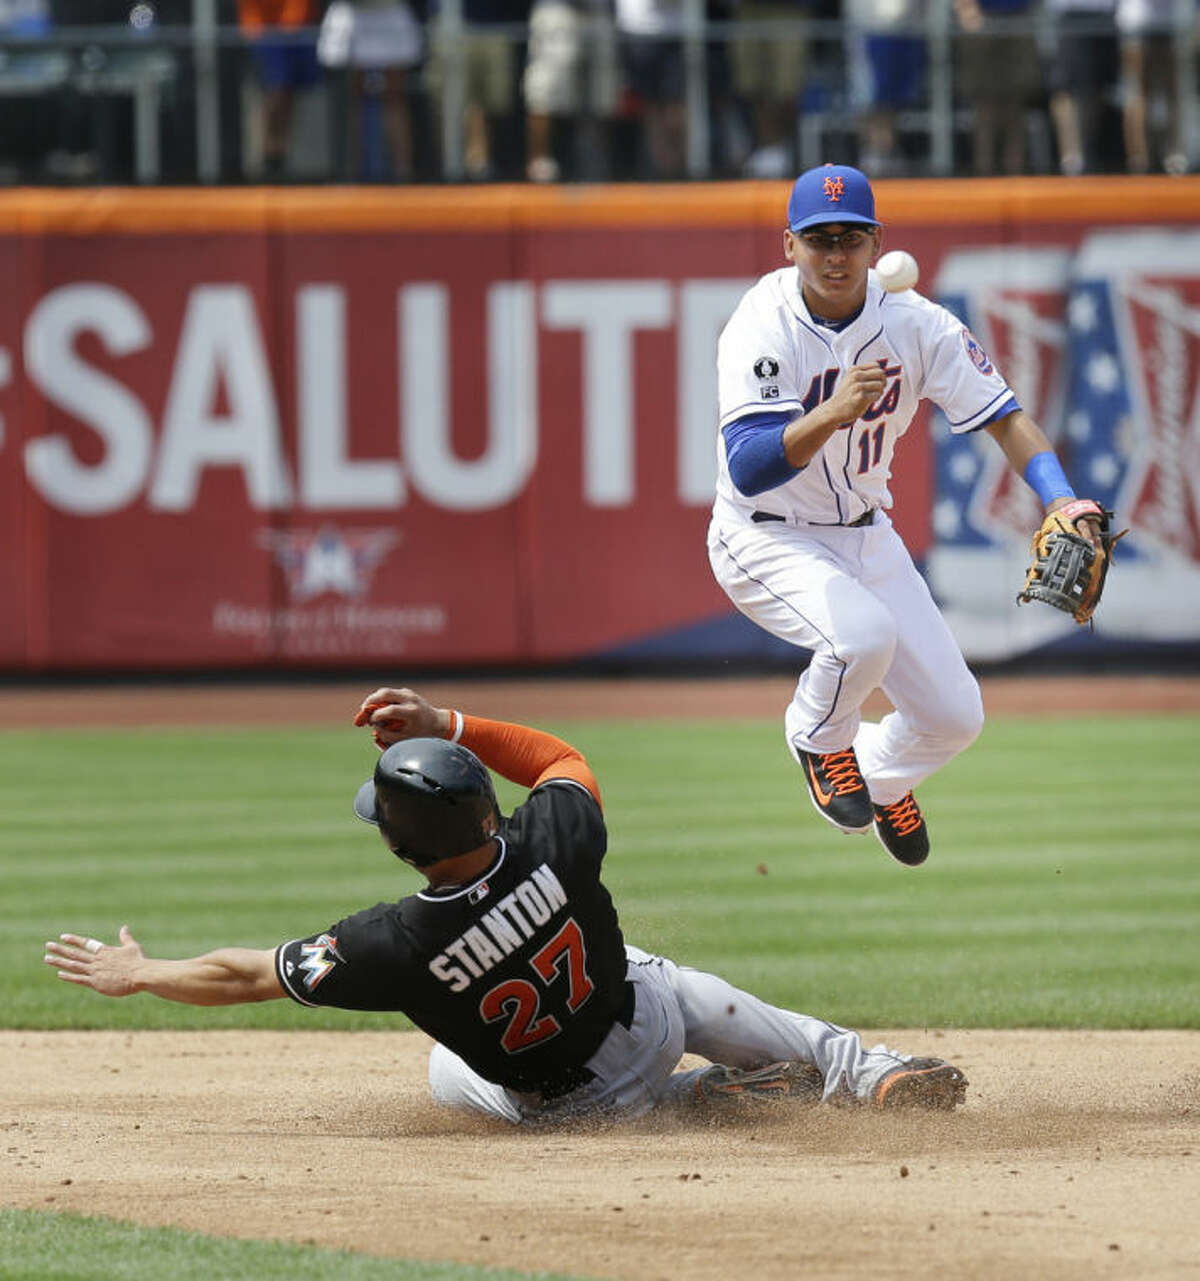 New York Mets shortstop Ruben Tejada, right, turns a double play on Miami Marlins' Giancarlo Stanton during the sixth inning of the baseball game at Citi Field, Sunday, July 13, 2014 in New York. (AP Photo/Seth Wenig)